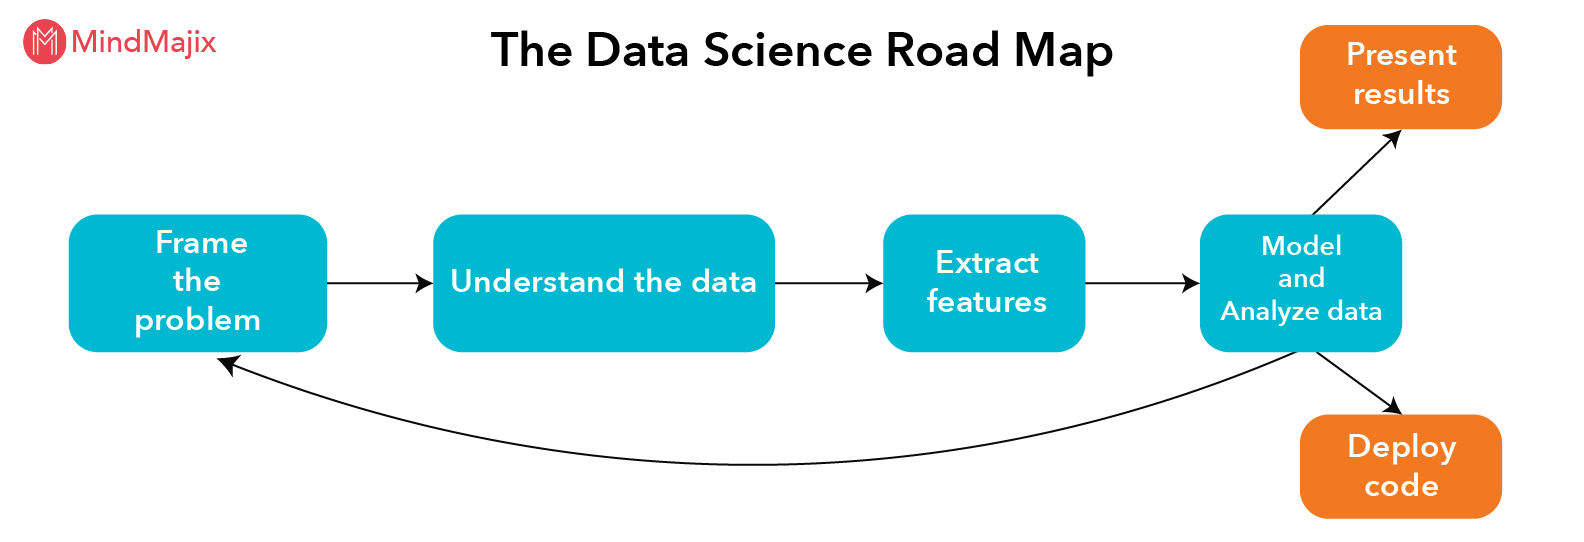 data-science-road-map